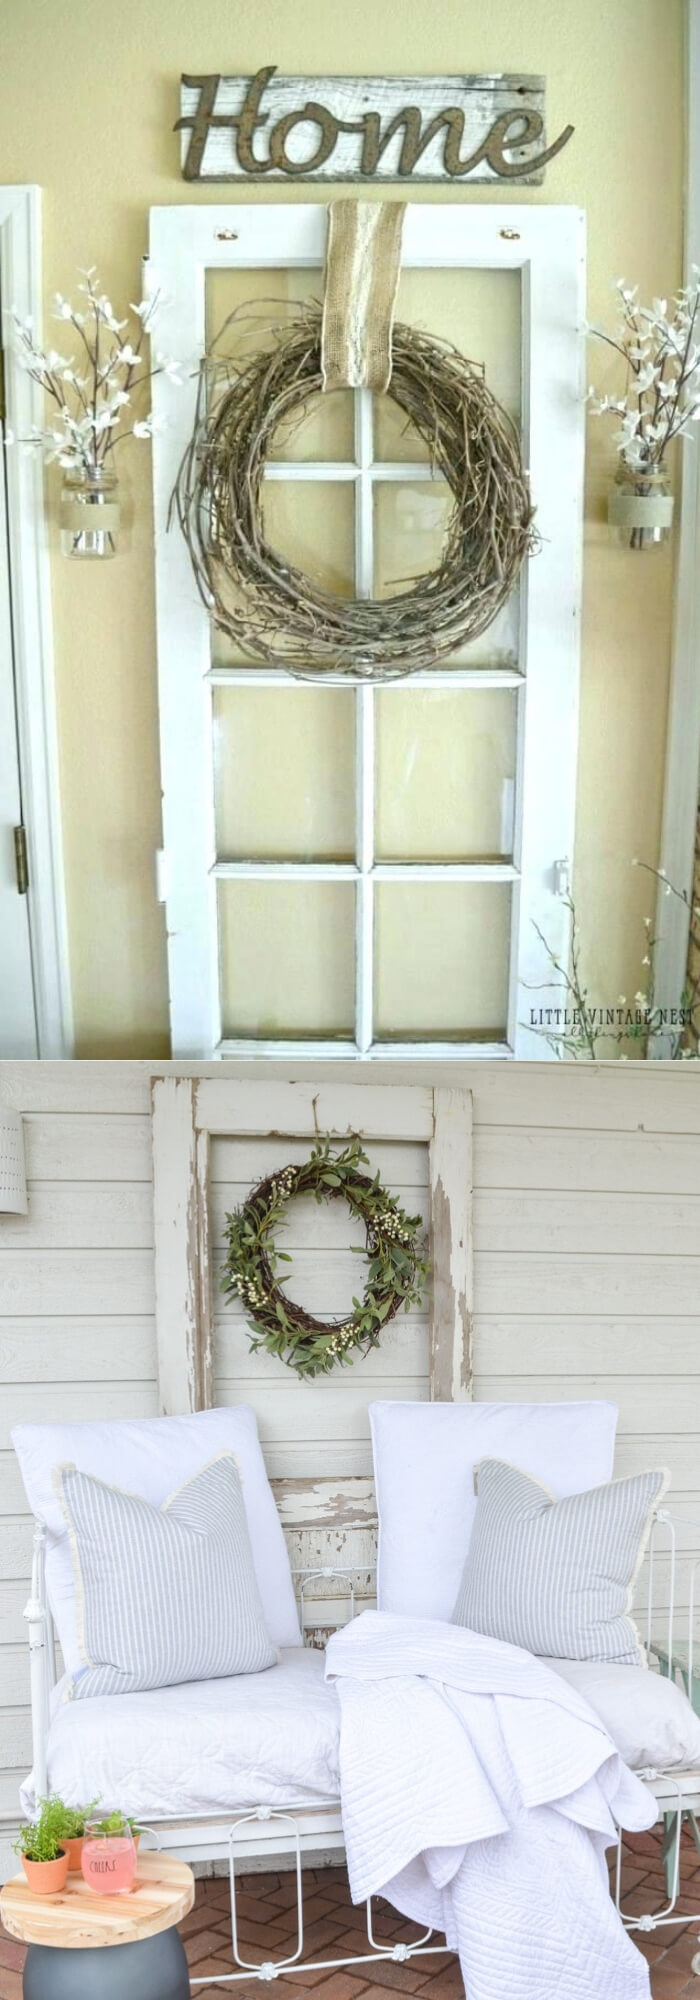 An old door decor with a twisted dry branch wreath | Stunning Farmhouse Dining Room Design & Decor Ideas